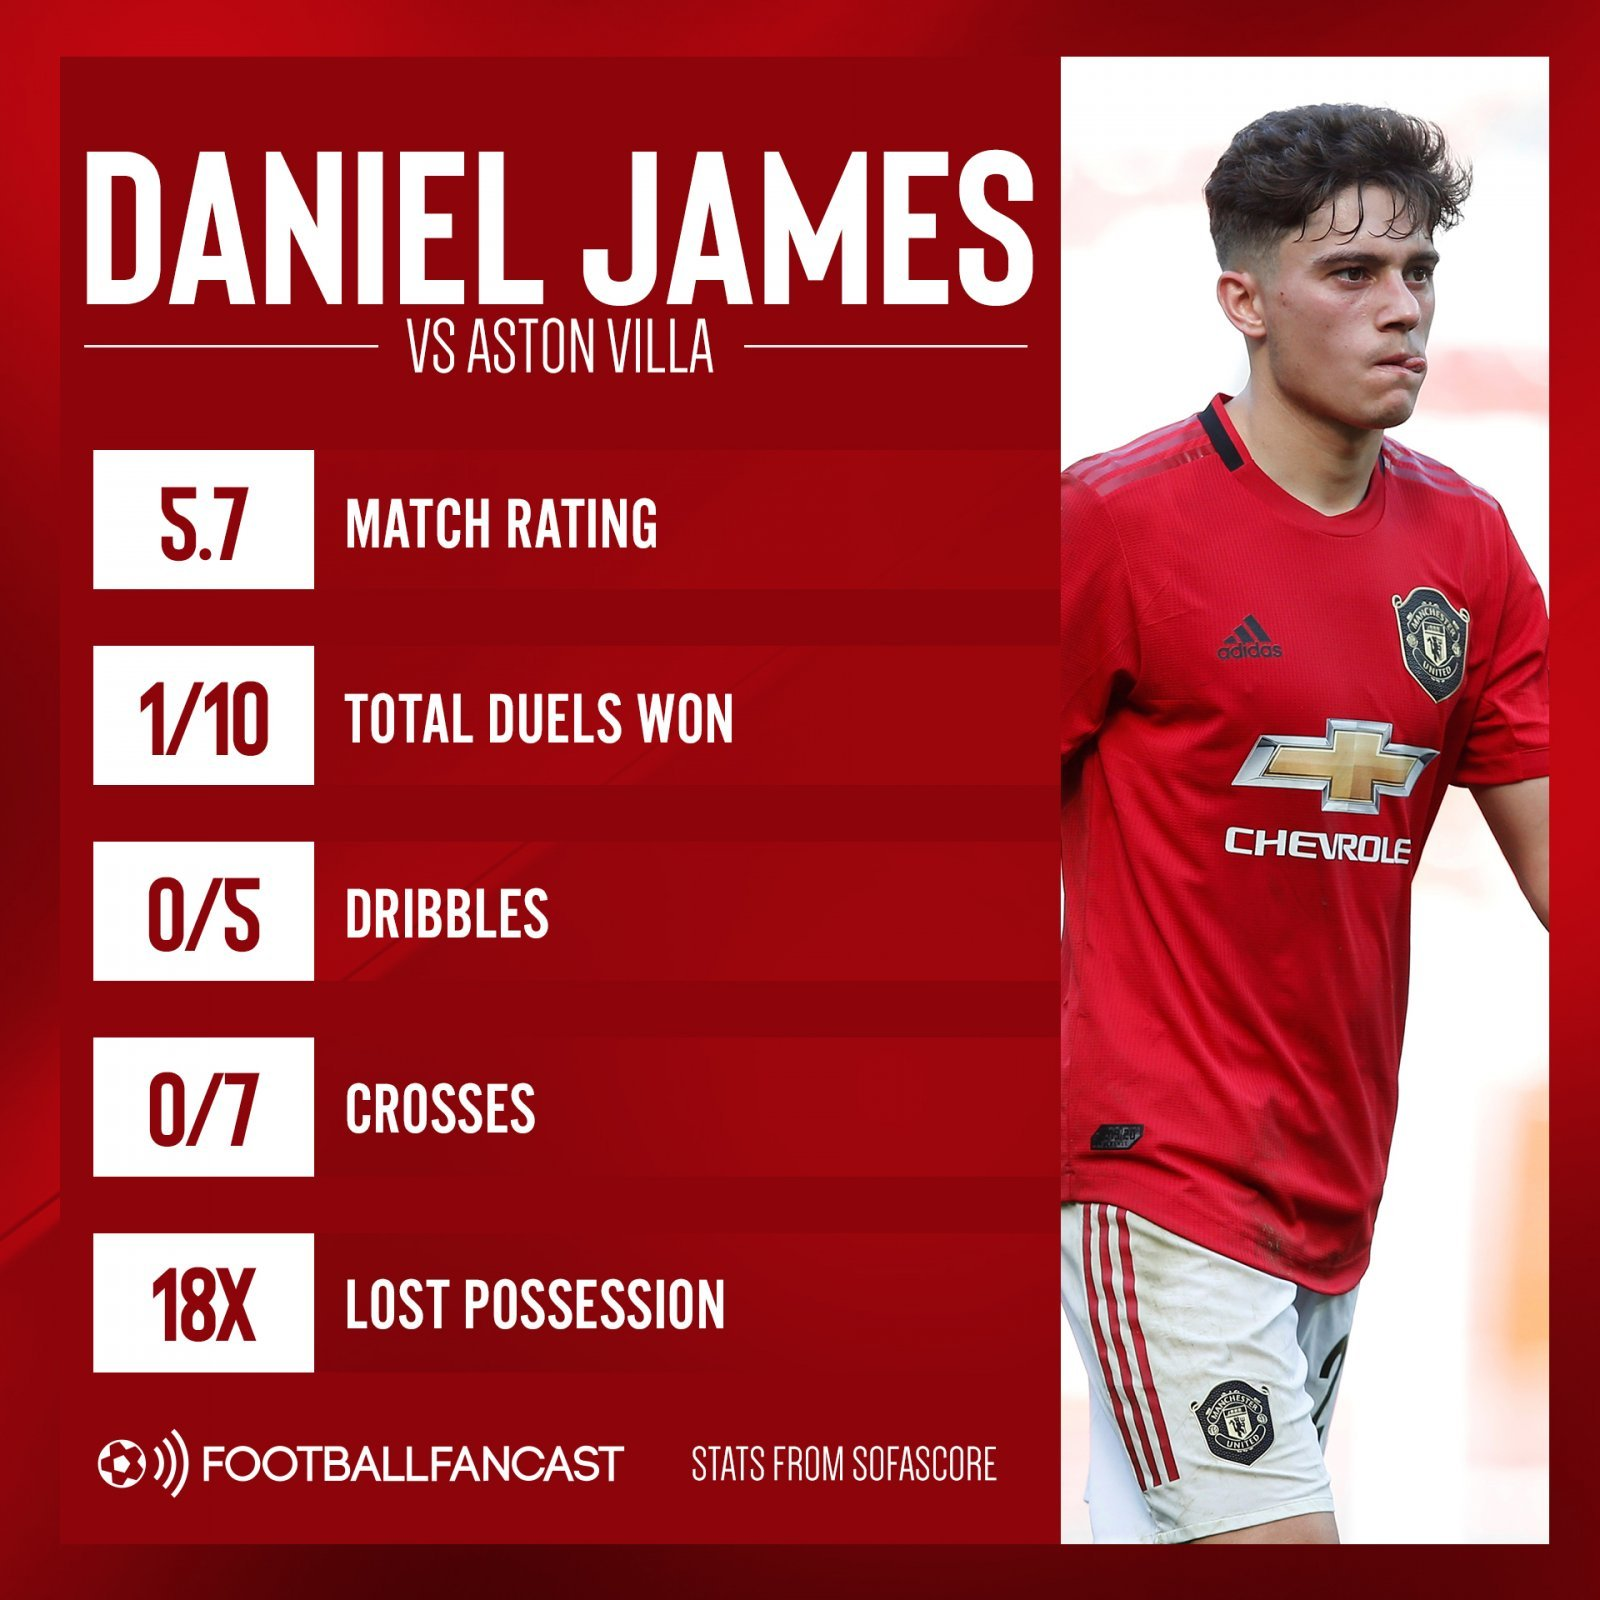 Daniel James vs Aston Villa